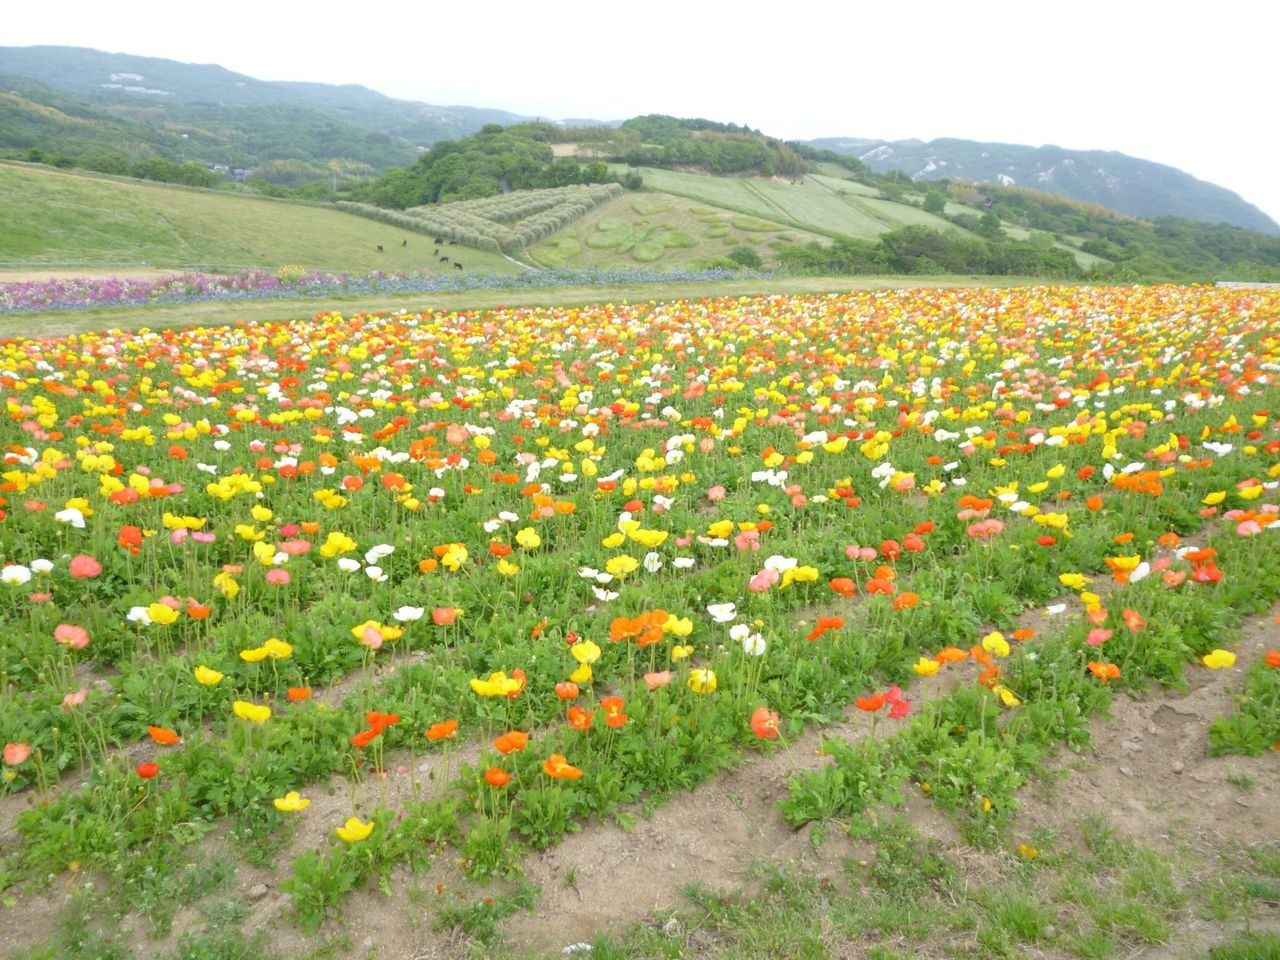 View Of Multi Colored Flowers Growing In Field